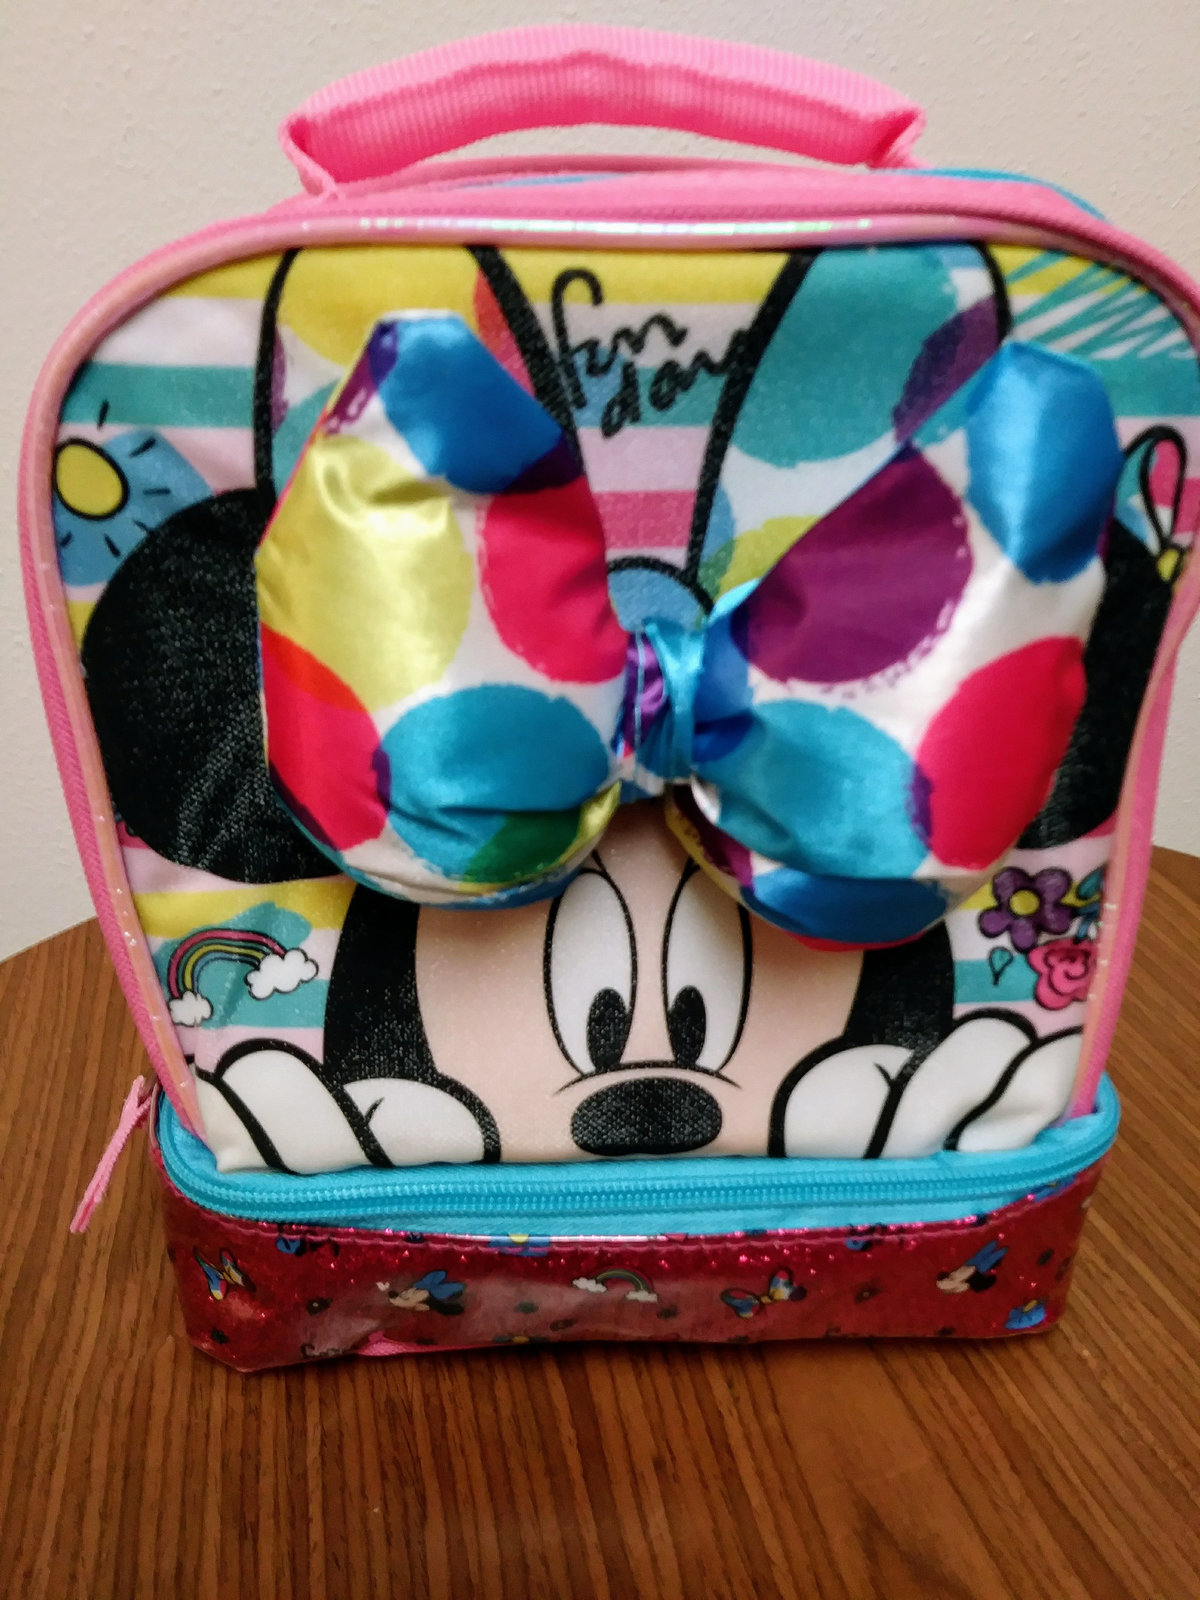 Disney Collection Minnie Mouse Insulated Lunch Box - Kids Lunch Bag